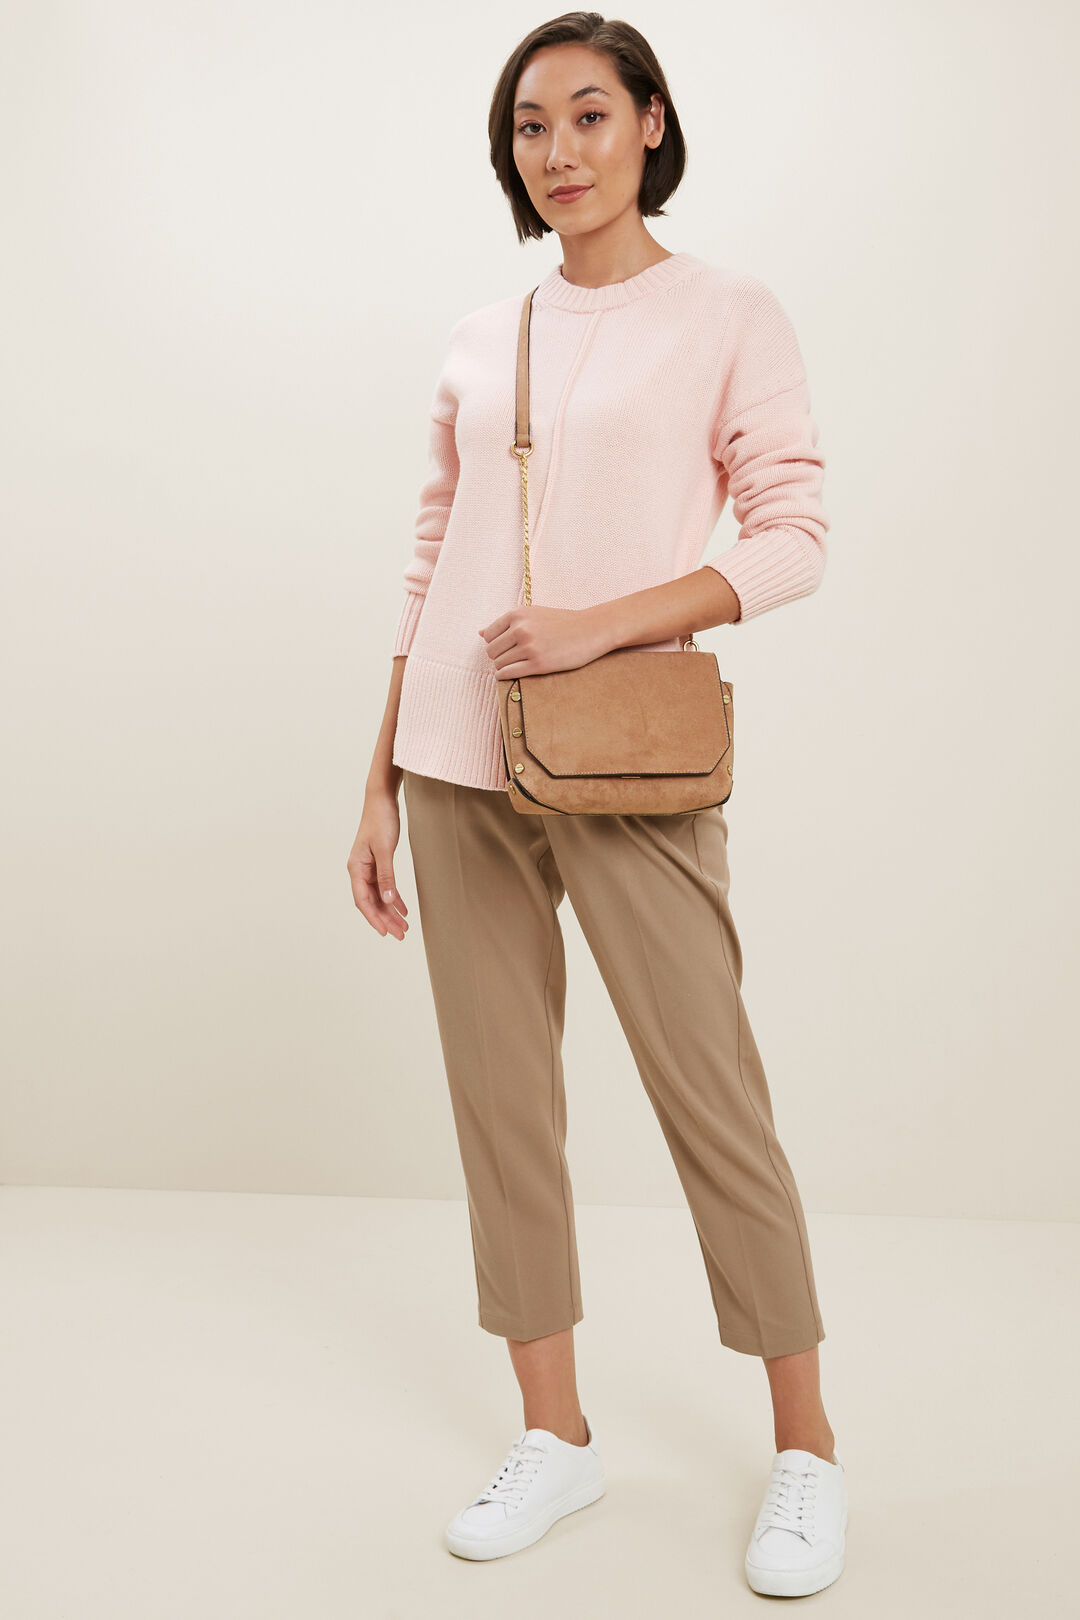 Relaxed Seam Front Sweater   ASH PINK  hi-res